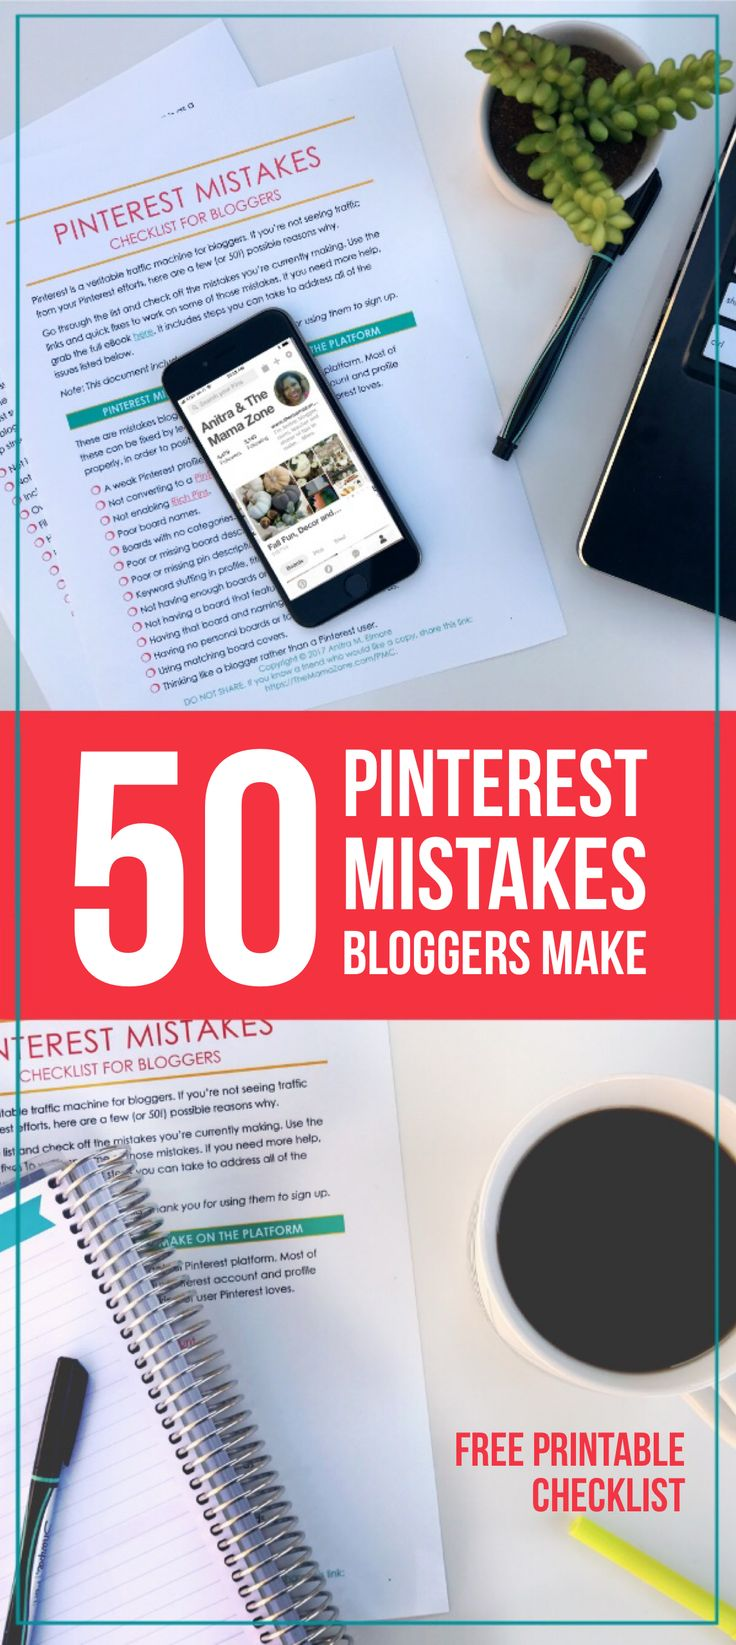 Are you tired of working hard on Pinterest and seeing little result? Go through this checklist to find out what mistakes you're making. Follow these quick fixes to begin generating traffic to your blog.